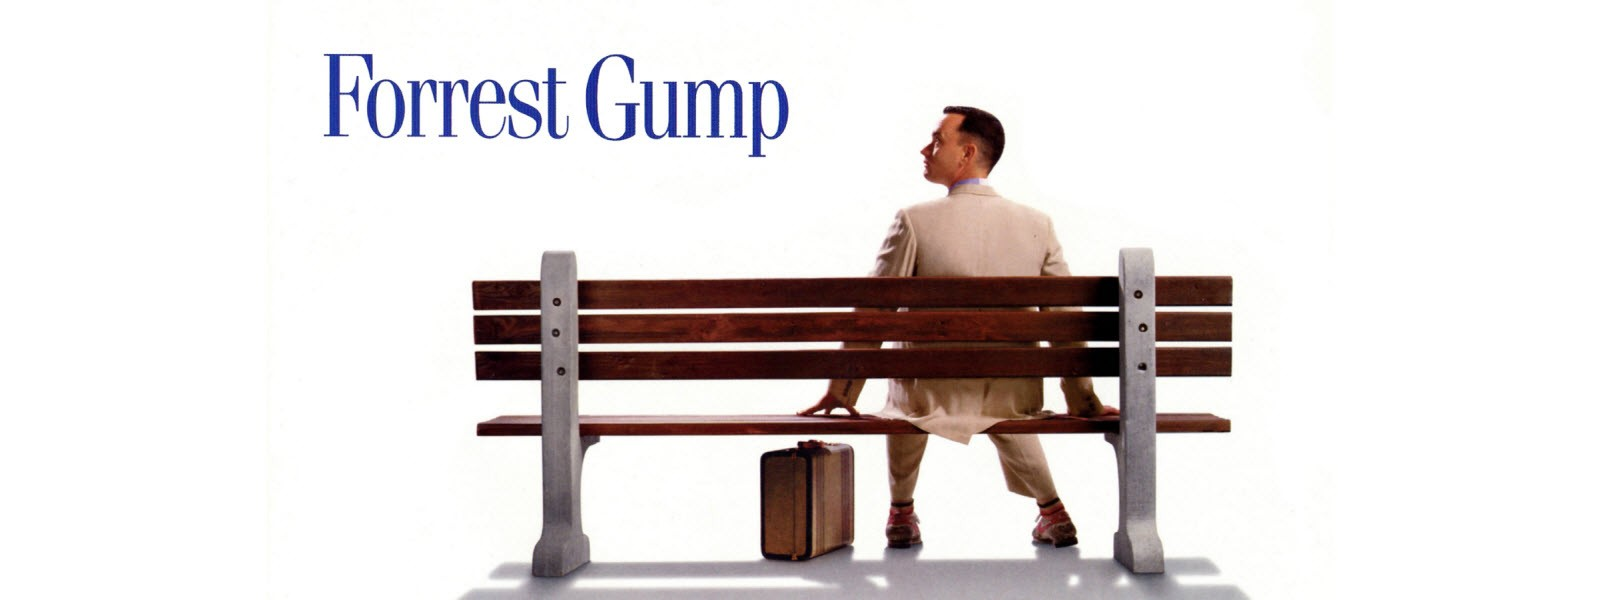 Forrest Gump and Channel Partnership Hardships Similarities